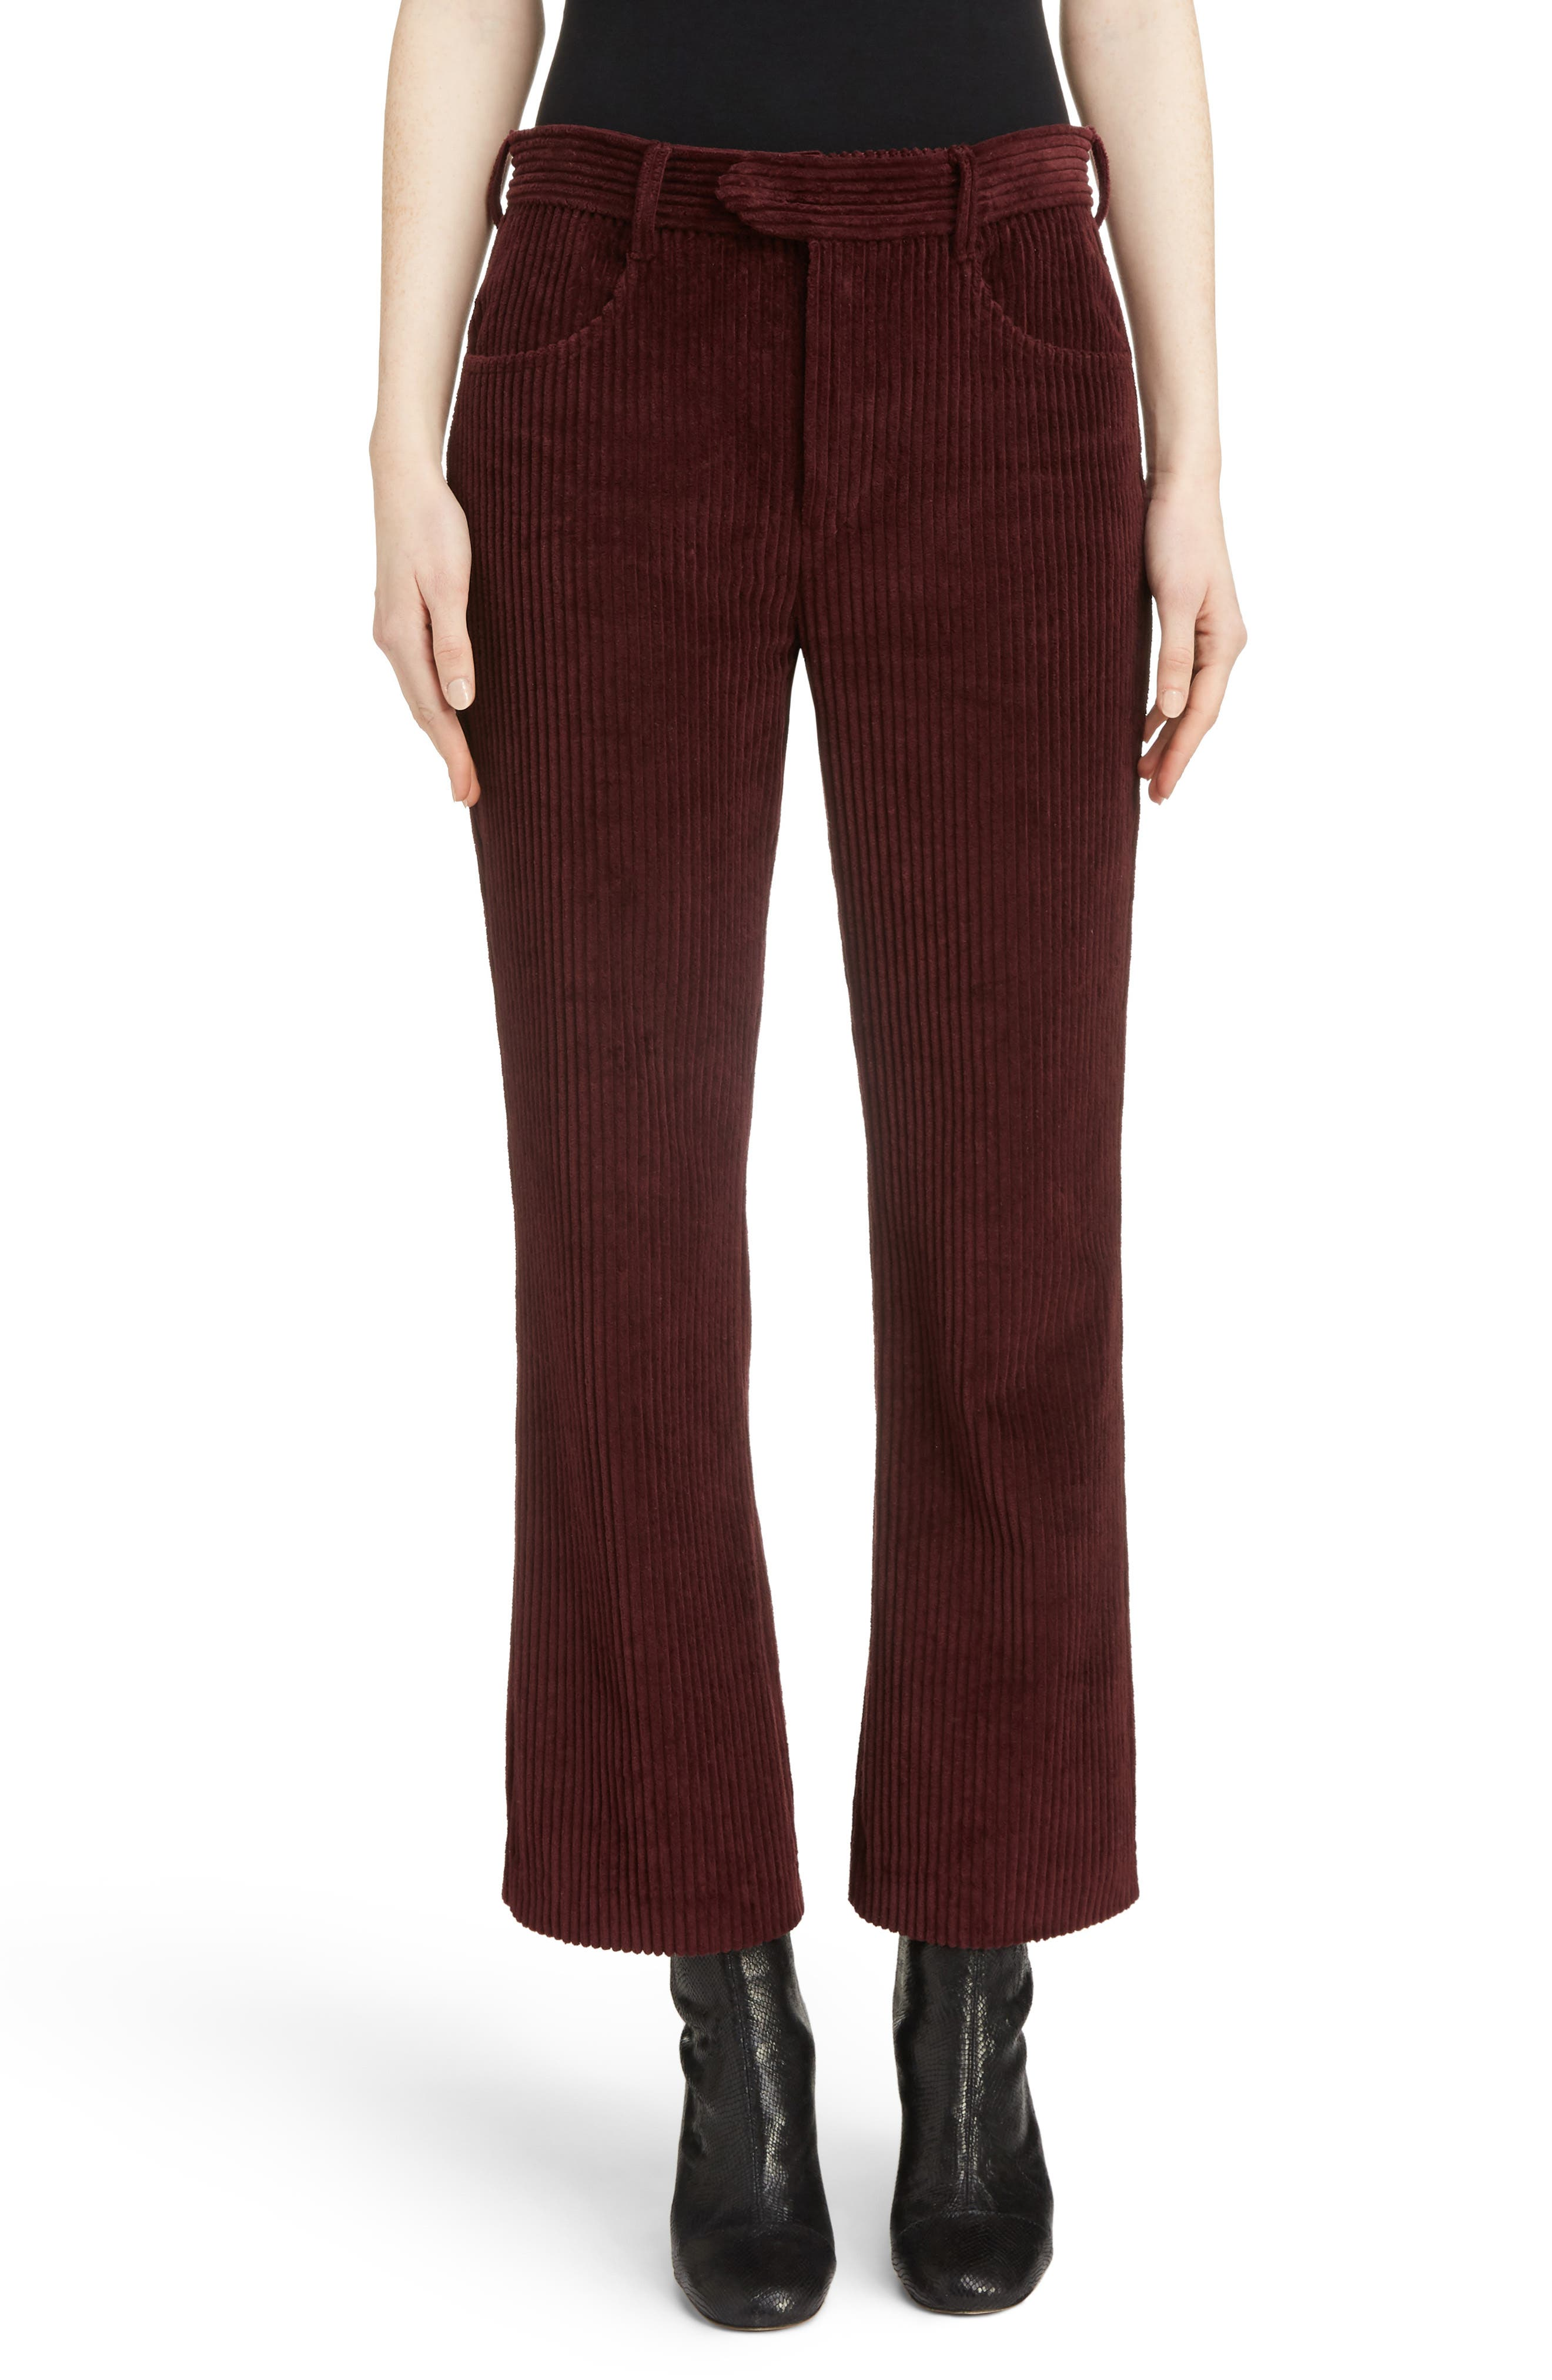 Mereo Velvet Crop Flare Pants,                             Main thumbnail 1, color,                             930